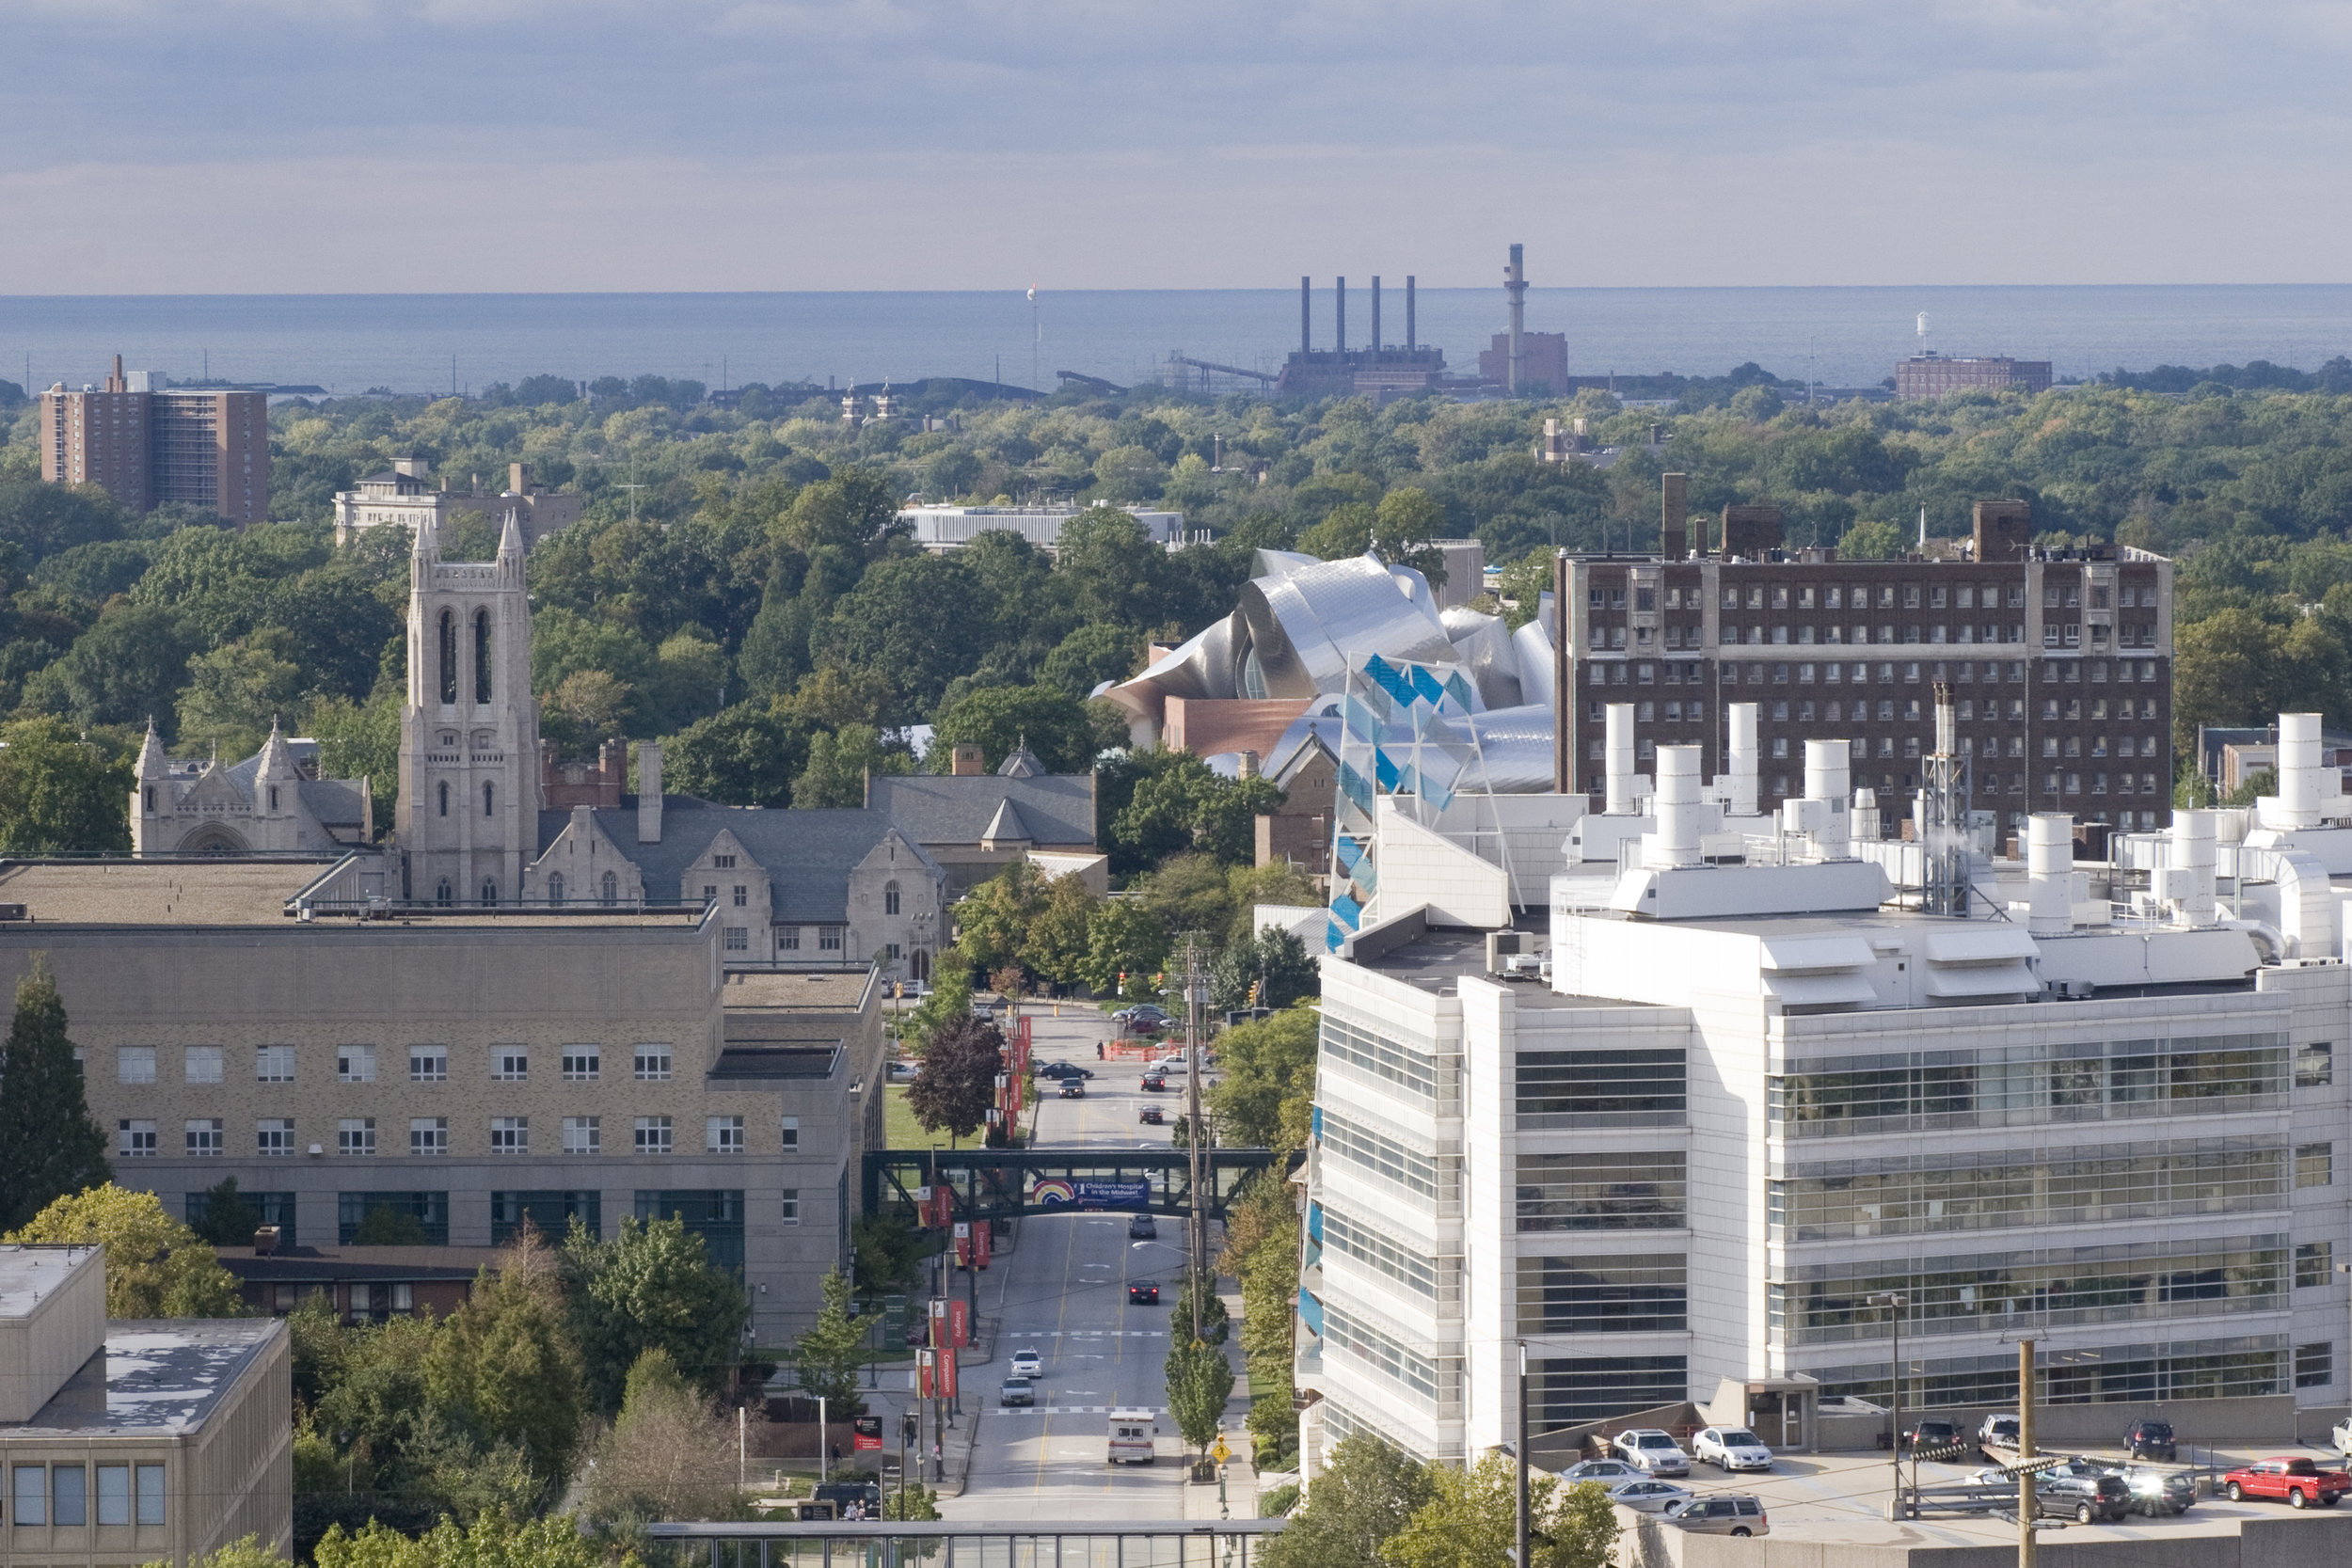 The center of University Circle is the home of three big anchor institutions: University Hospital (foreground), Case Western Reserve University (with its metallic-roofed Frank Gehry-designed management school) and Cleveland Clinic (off camera to the left).